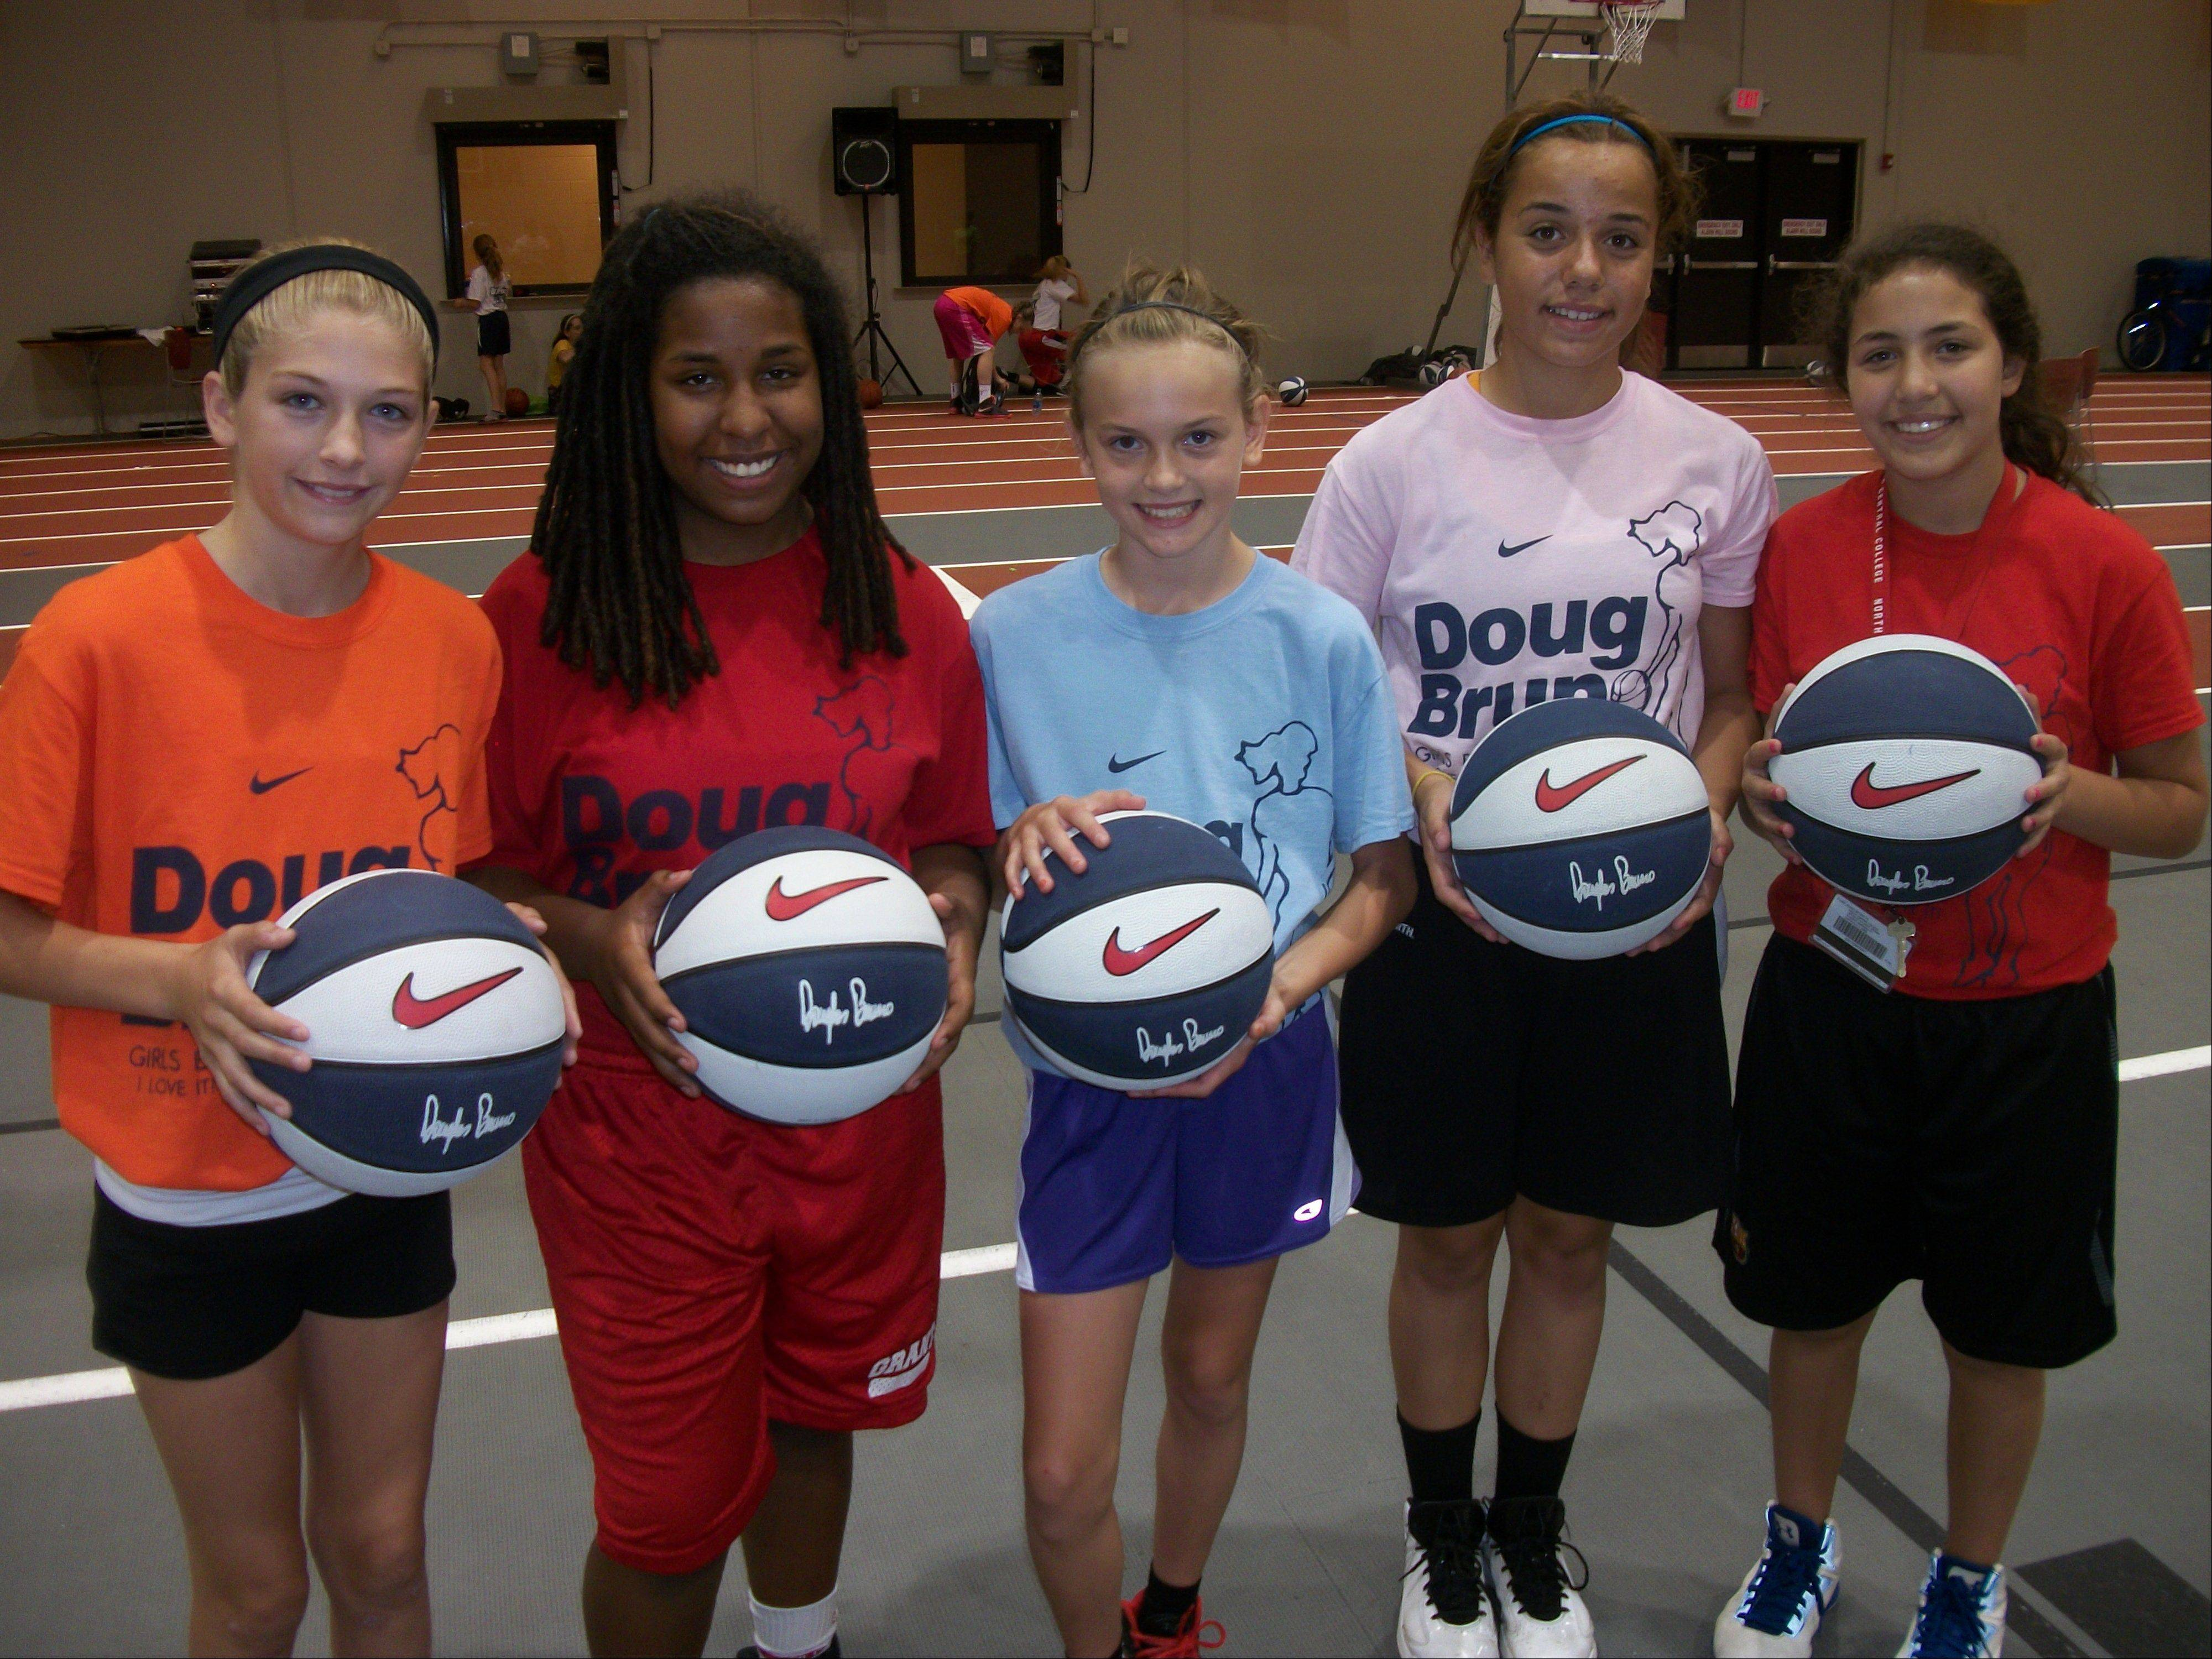 Enjoying their experience at Doug Bruno's basketball camp this summer were, from left, Brooke Karpinske, Liz Schram, Kelsey McGraw, Gabby Rogalovich and Mercedes Uribe.